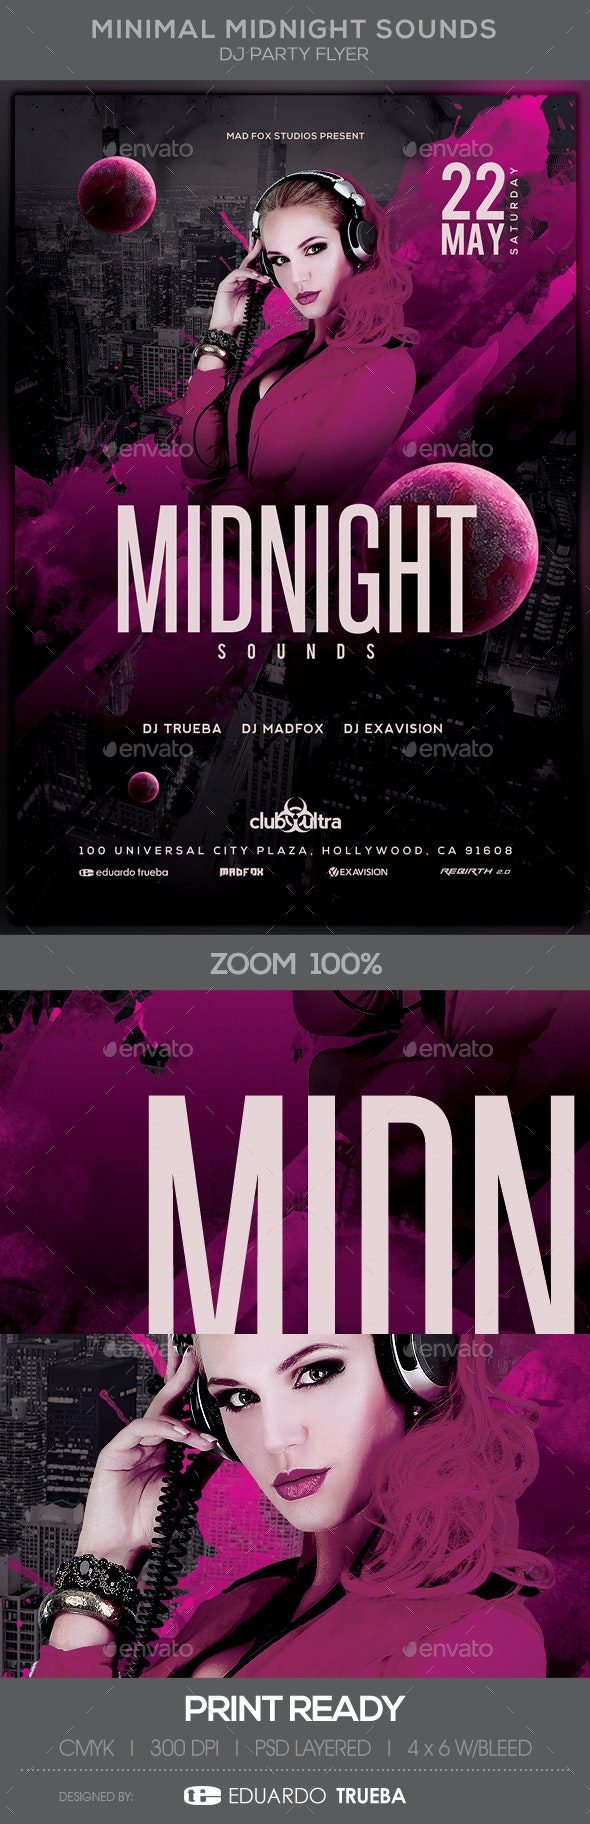 Minimal Midnight Sounds Dj Party Flyer - Clubs & Parties Events